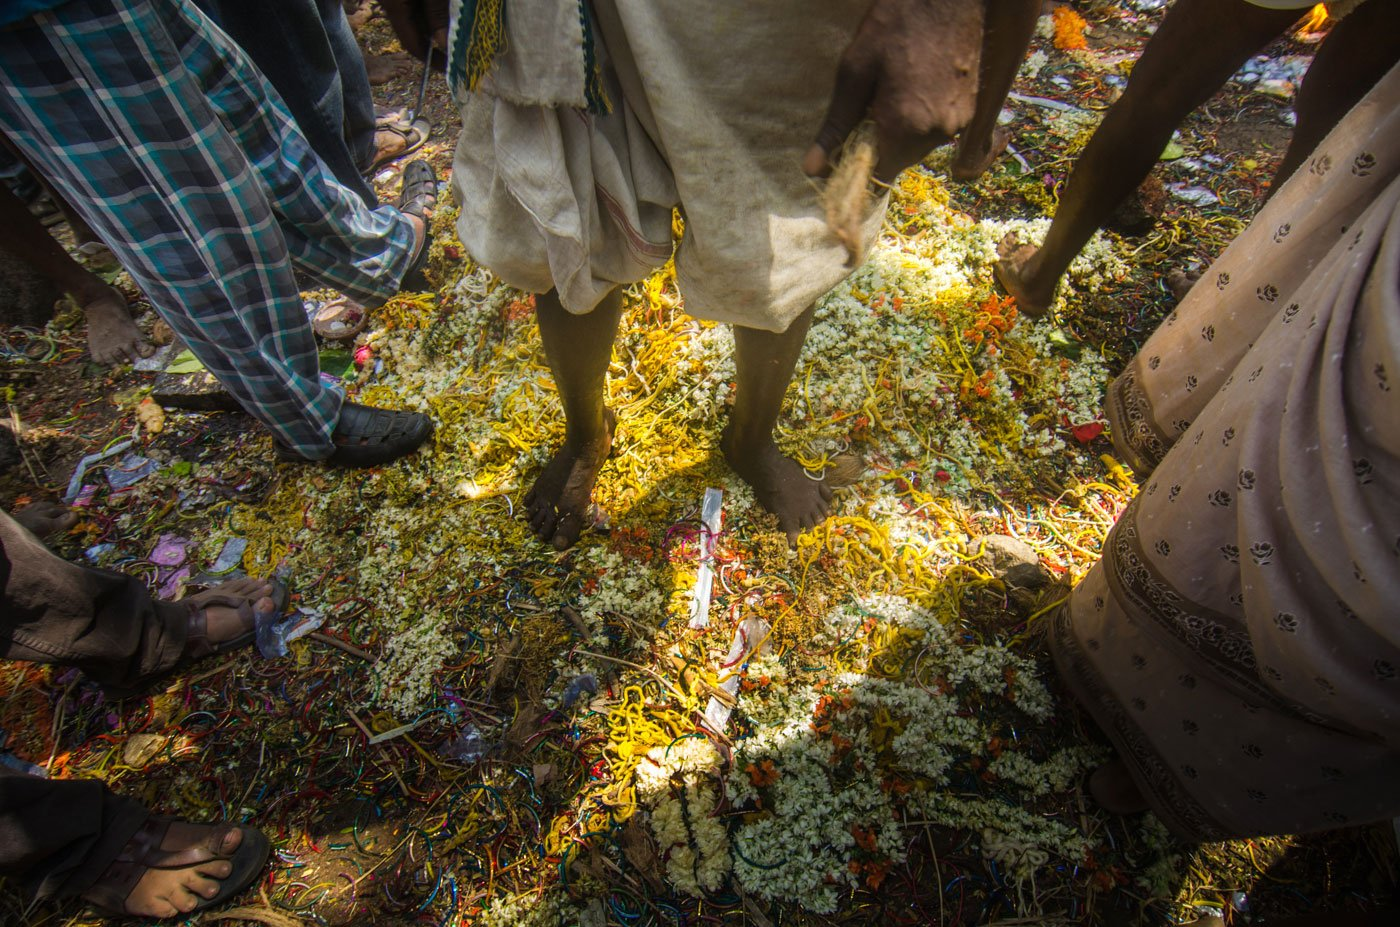 Near the temple are the remnants of what used to be signs of marriage – scattered garlands, broken bangles and cut up thalis